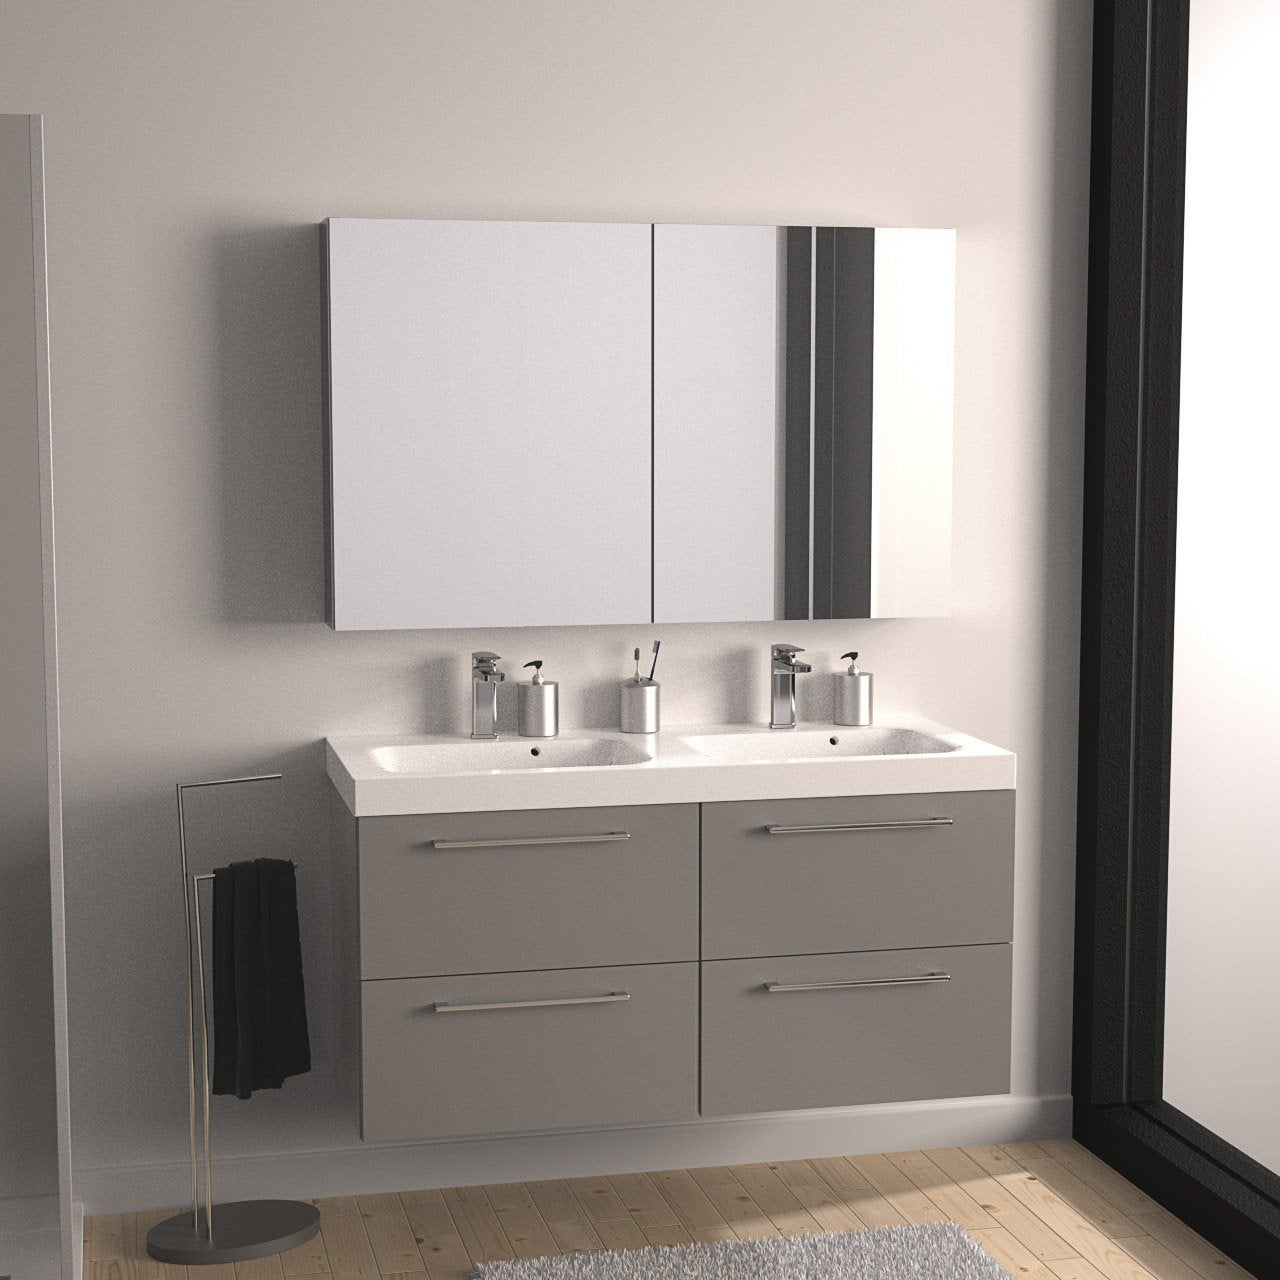 meuble de salle de bains plus de 120 gris argent remix. Black Bedroom Furniture Sets. Home Design Ideas